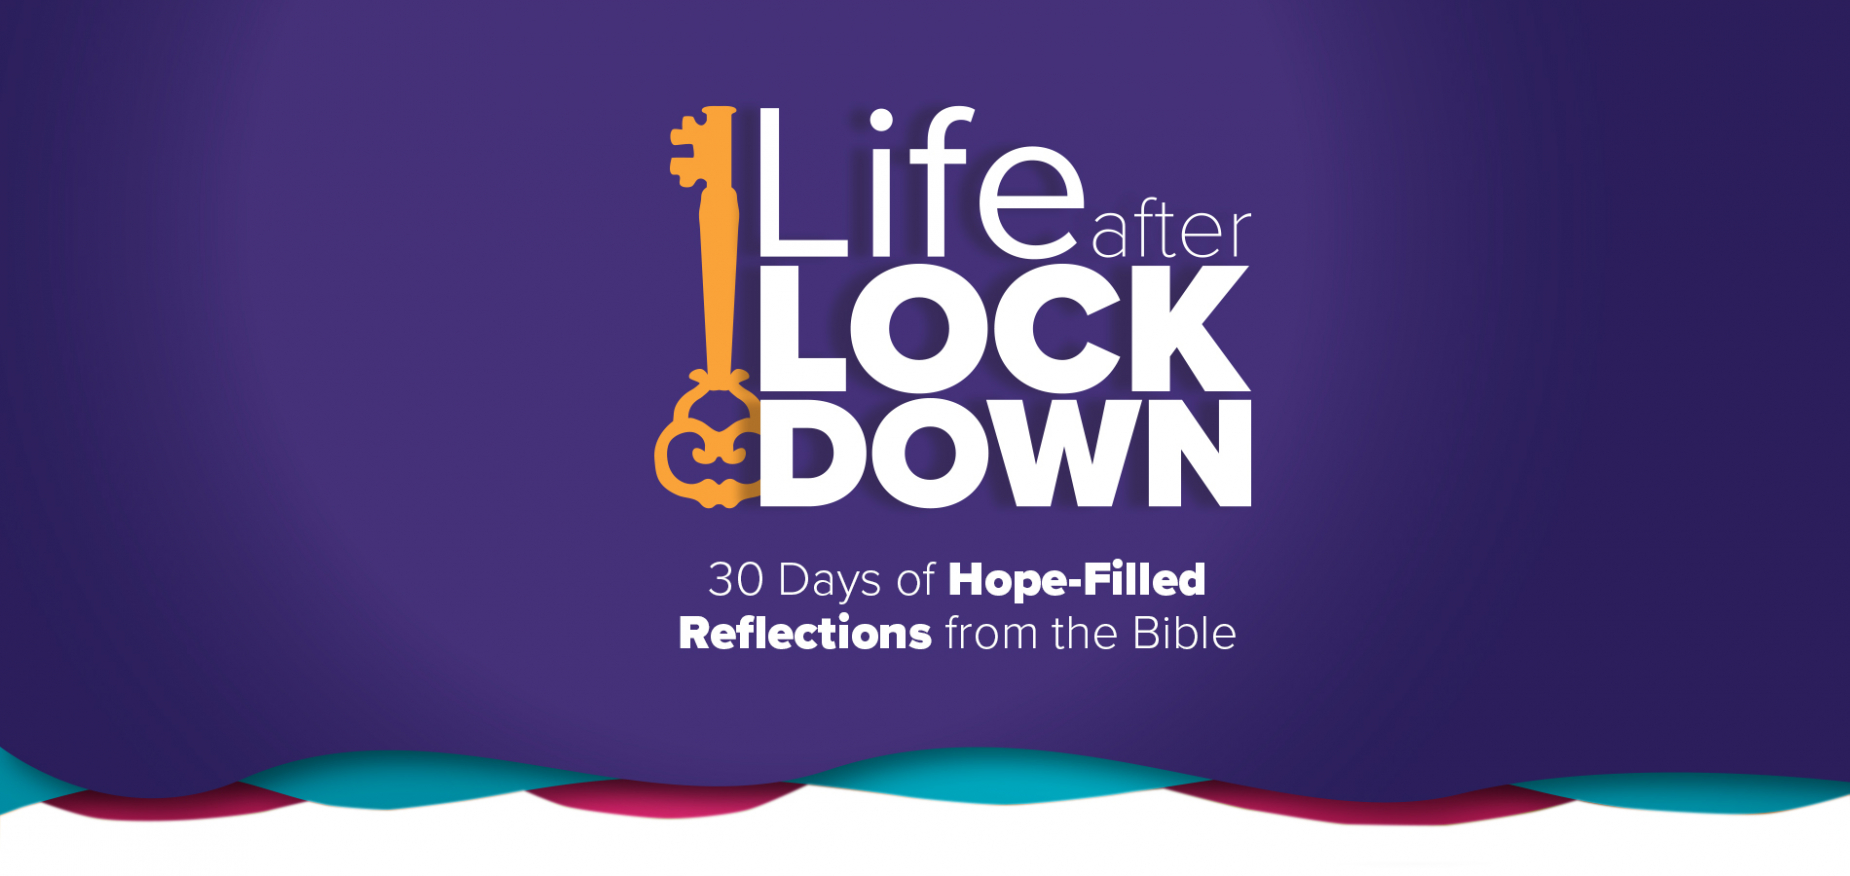 Life after Lockdown: 30 Days of Hope-Filled Reflections from the Bible